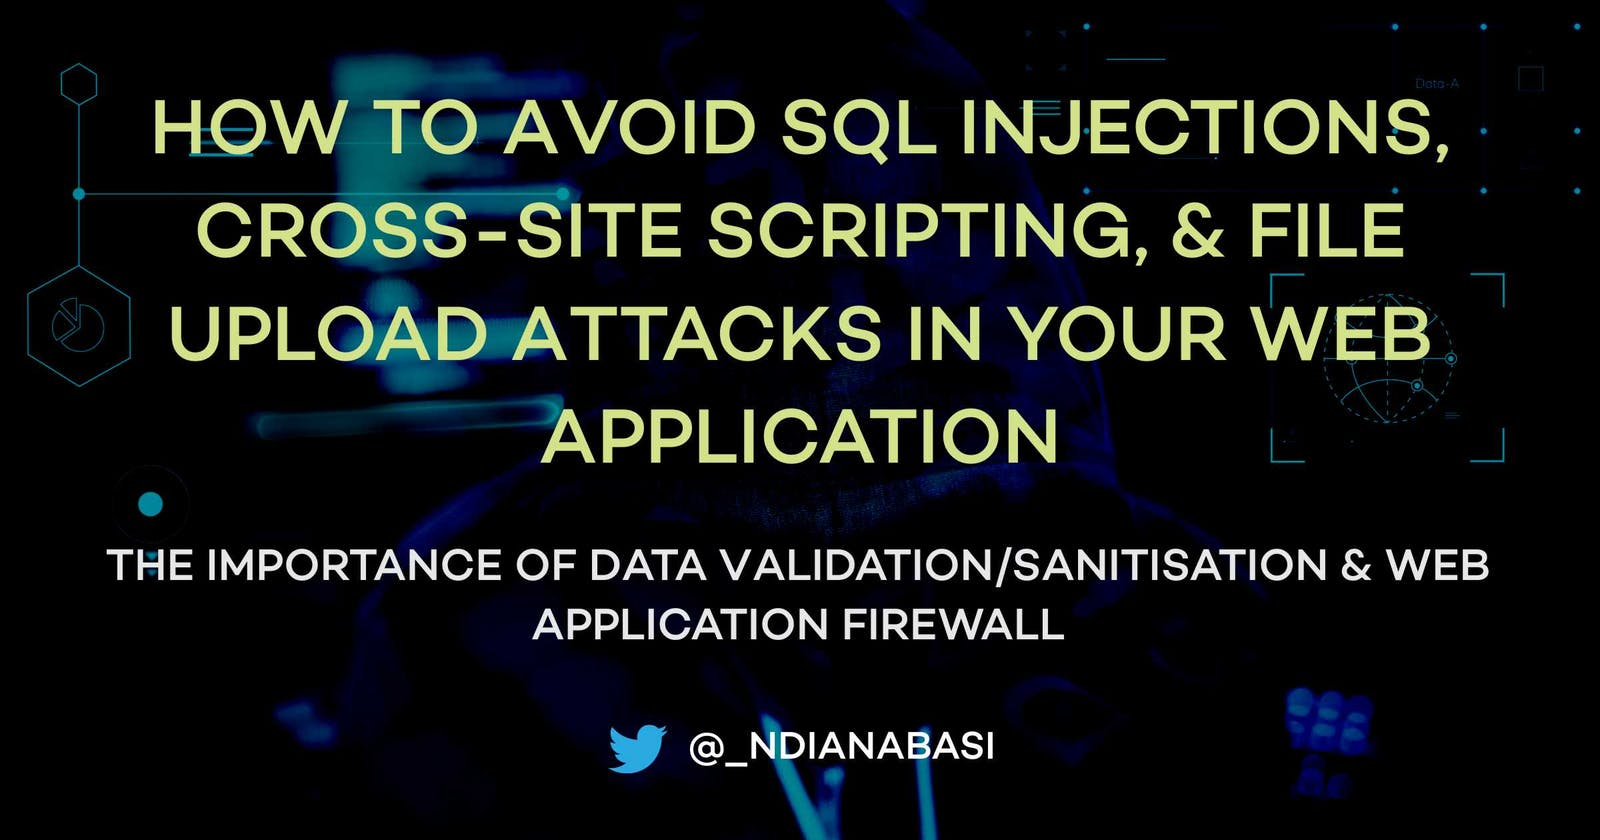 How to Avoid SQL Injections, XSS Attacks, and File Upload Attacks in your Web Application